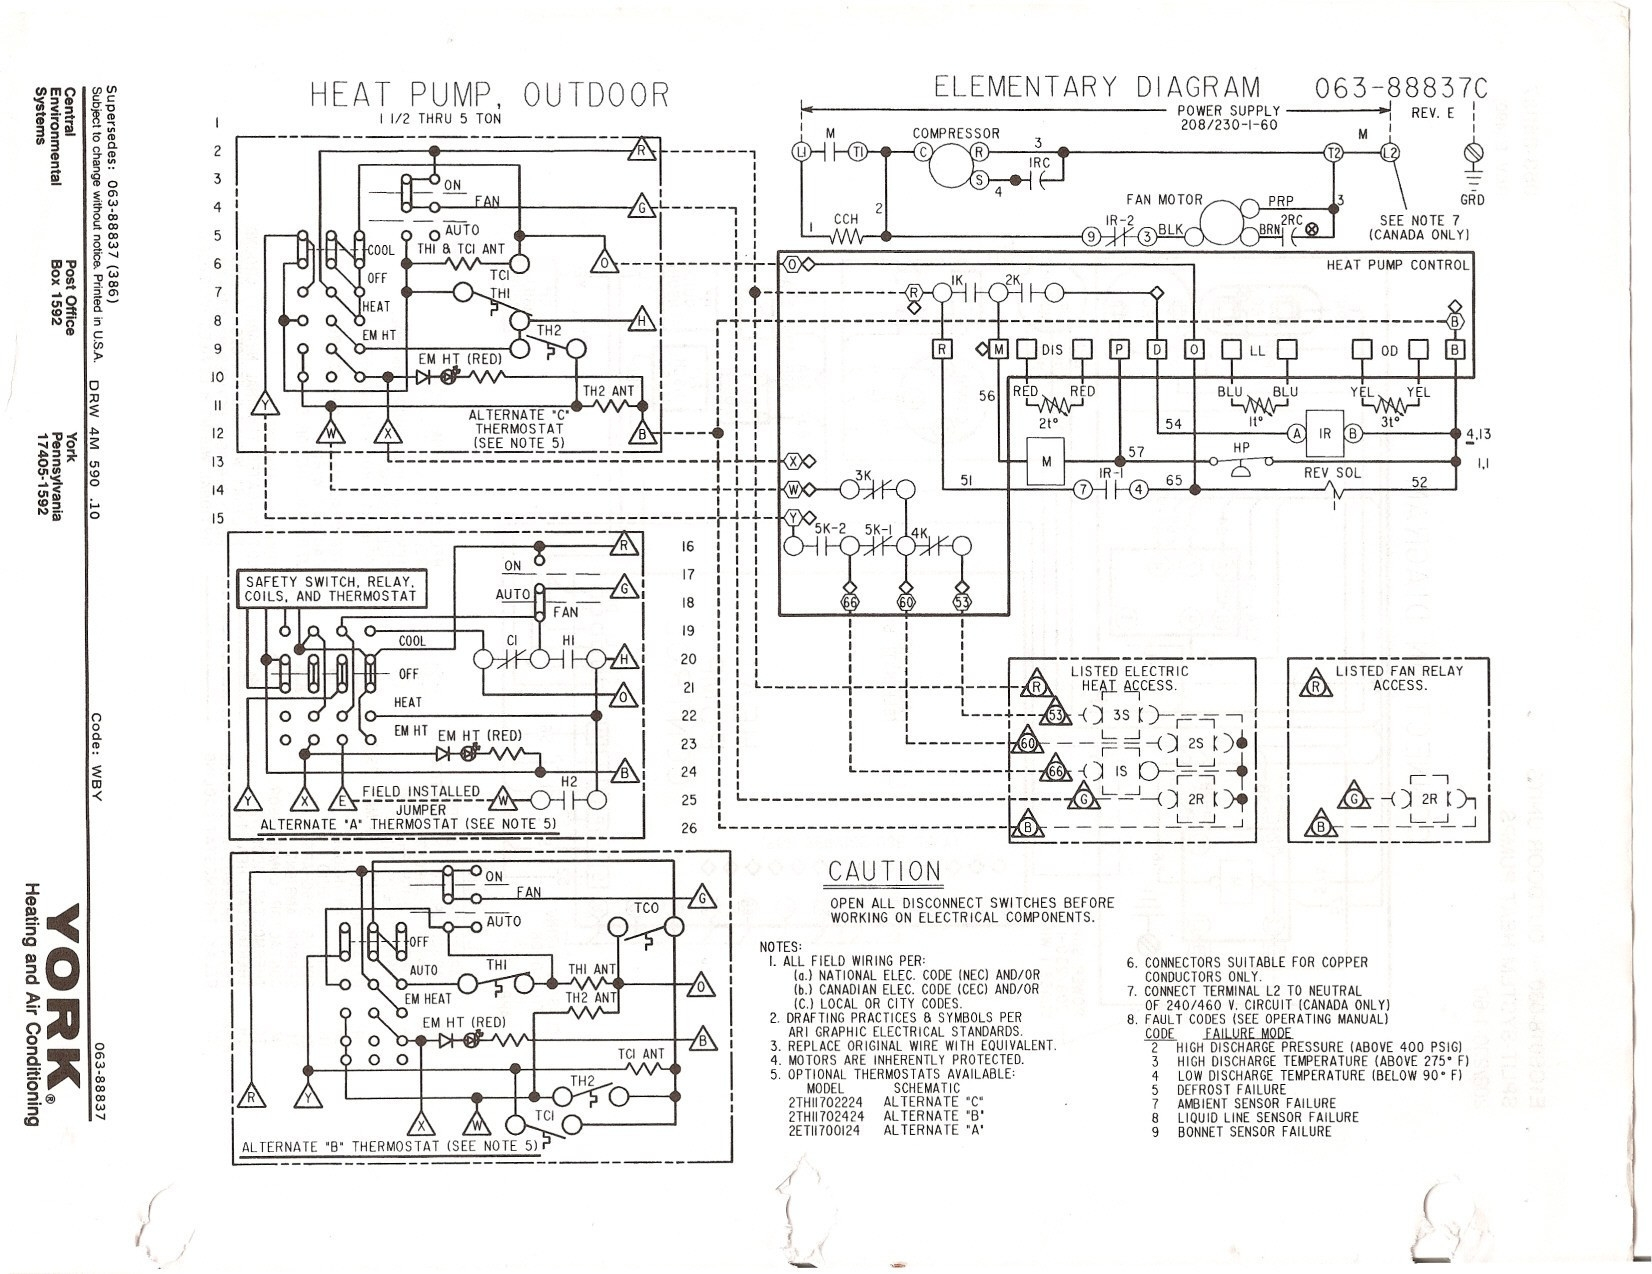 York Hvac Wiring Diagrams Gas | Wiring Diagram York Furnace Wiring Diagram on